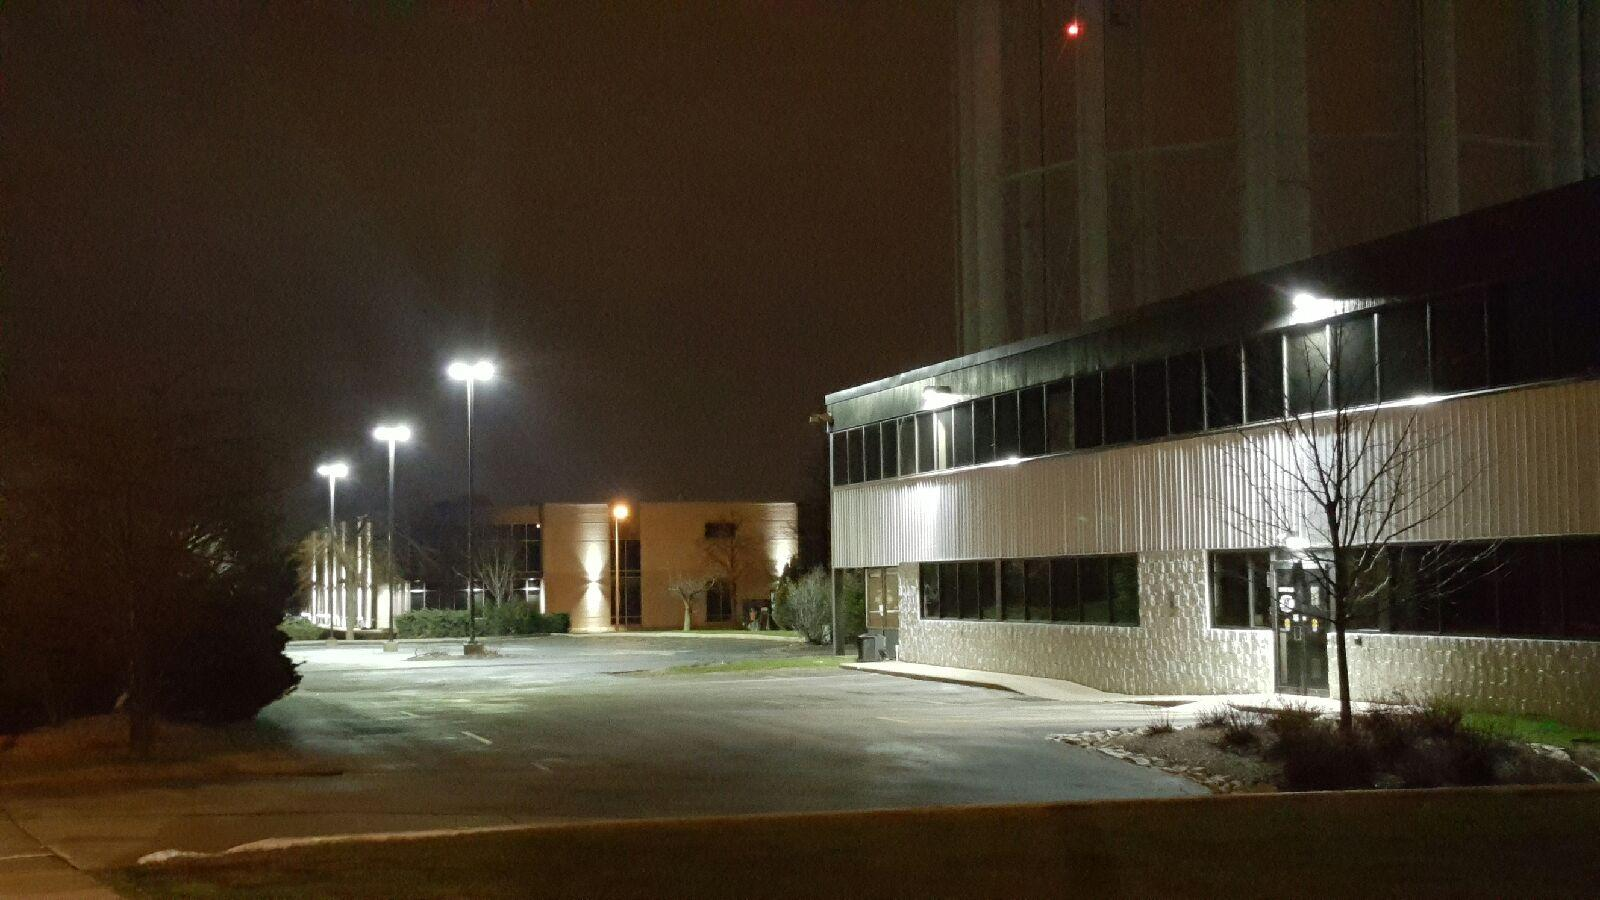 Green light by hein electric supply may 2016 light source used our solution was to replace certain fixtures while eliminating others as the improved coverage pattern of led allowed us to reduce aloadofball Choice Image